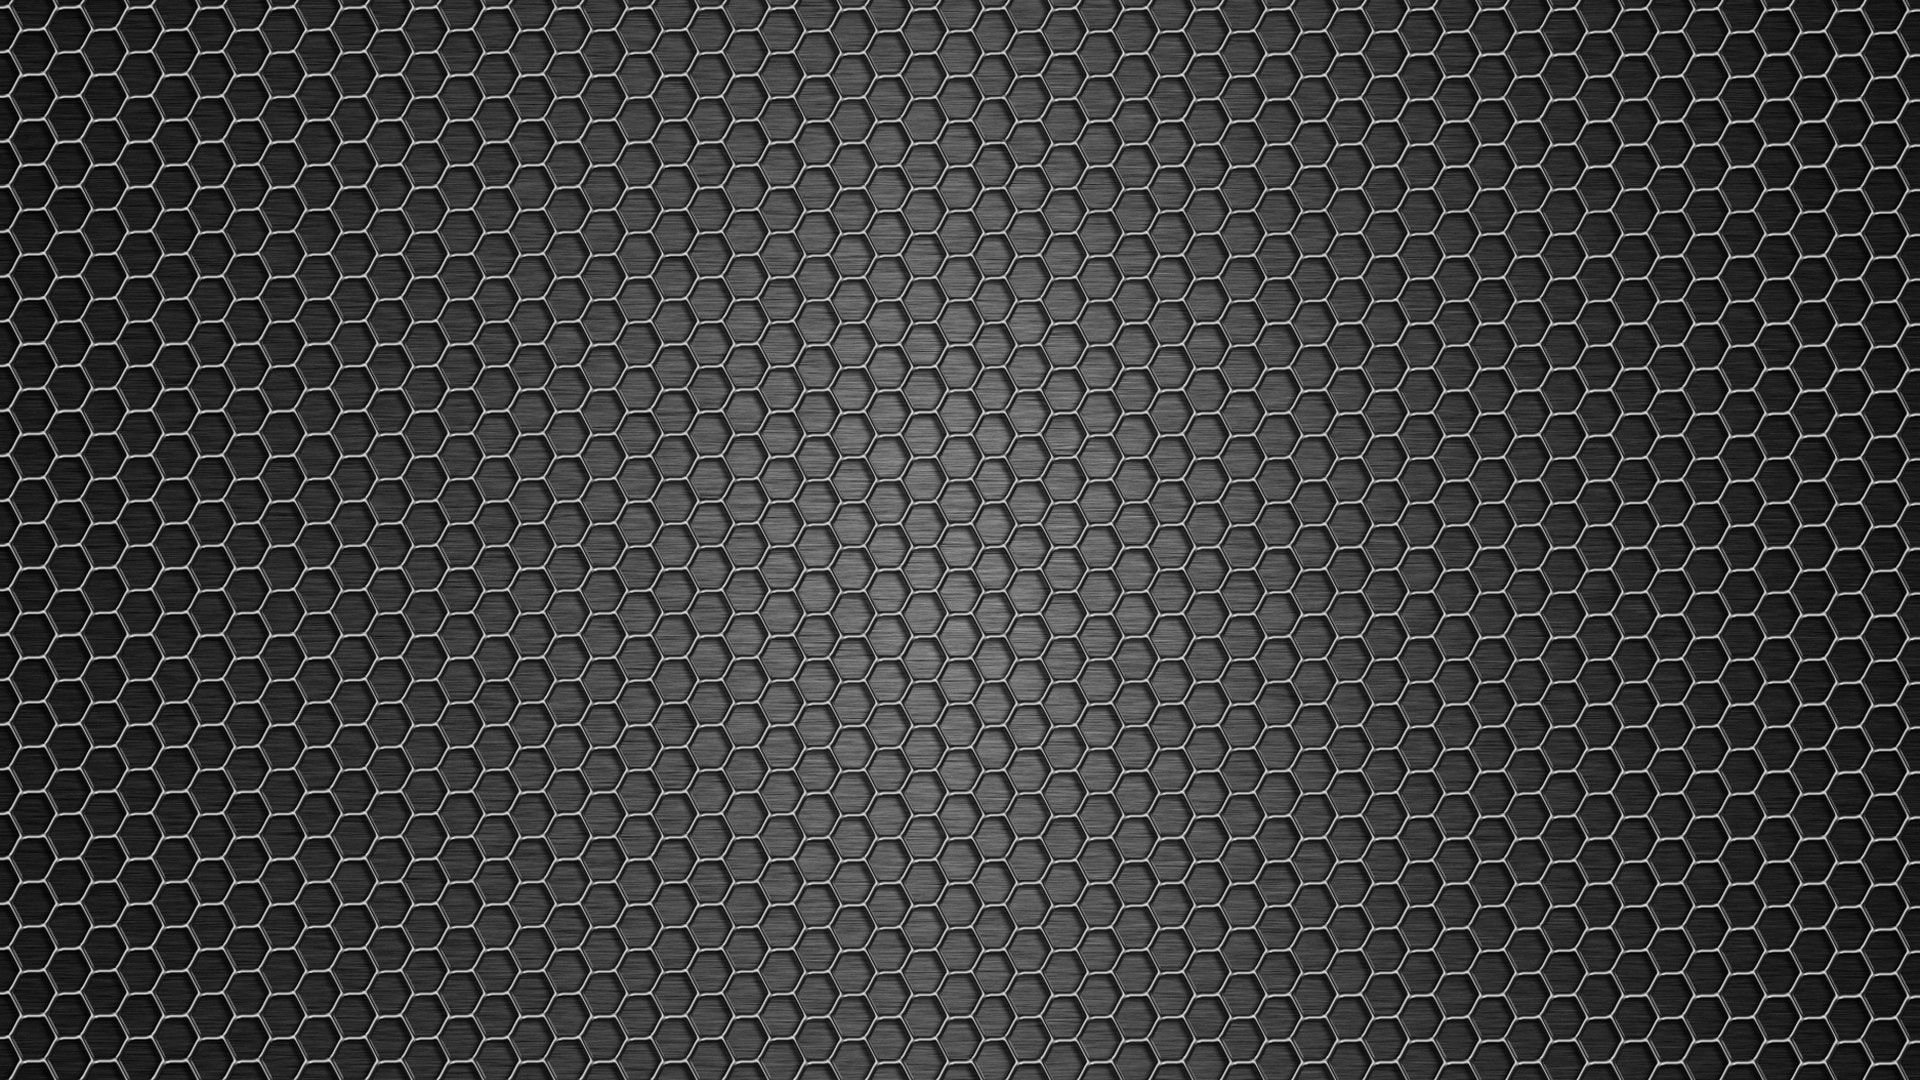 100958 download wallpaper Background, Textures, Dark, Texture, Grid, Metal, Metallic screensavers and pictures for free